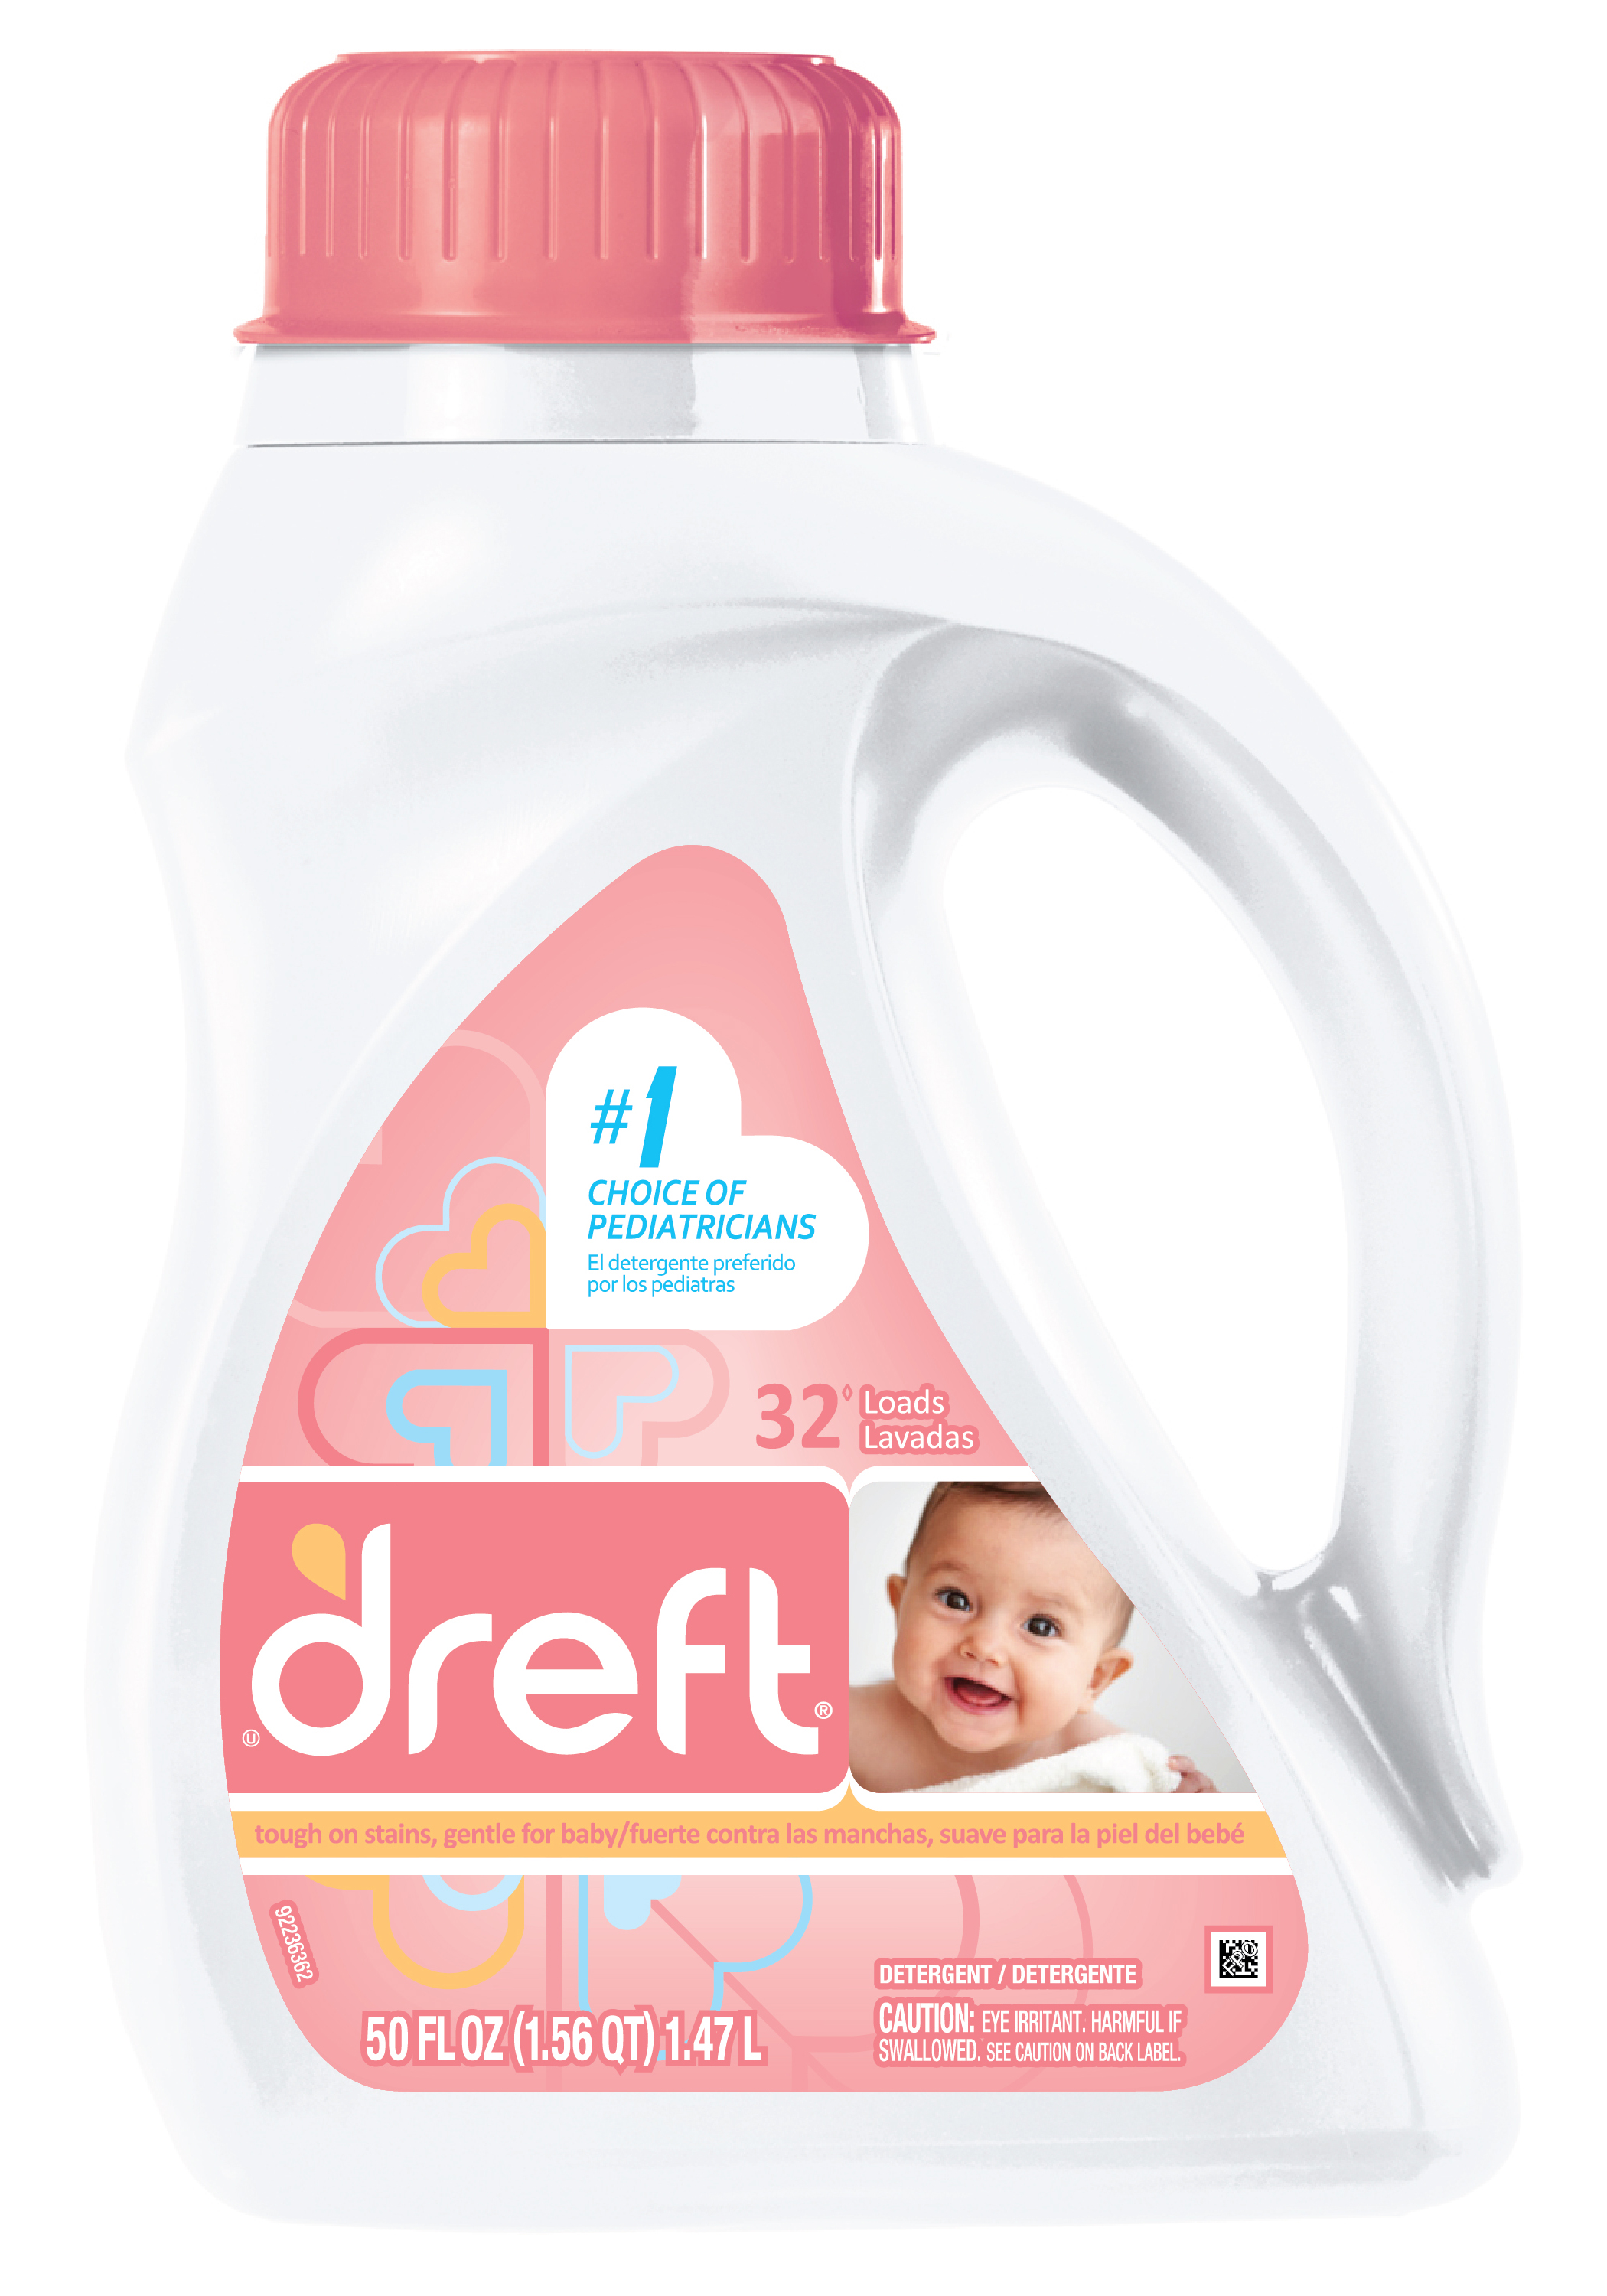 graphic about Dreft Printable Coupon known as Clean Printables* Dreft Detergent (excl. Stain Remover Demo